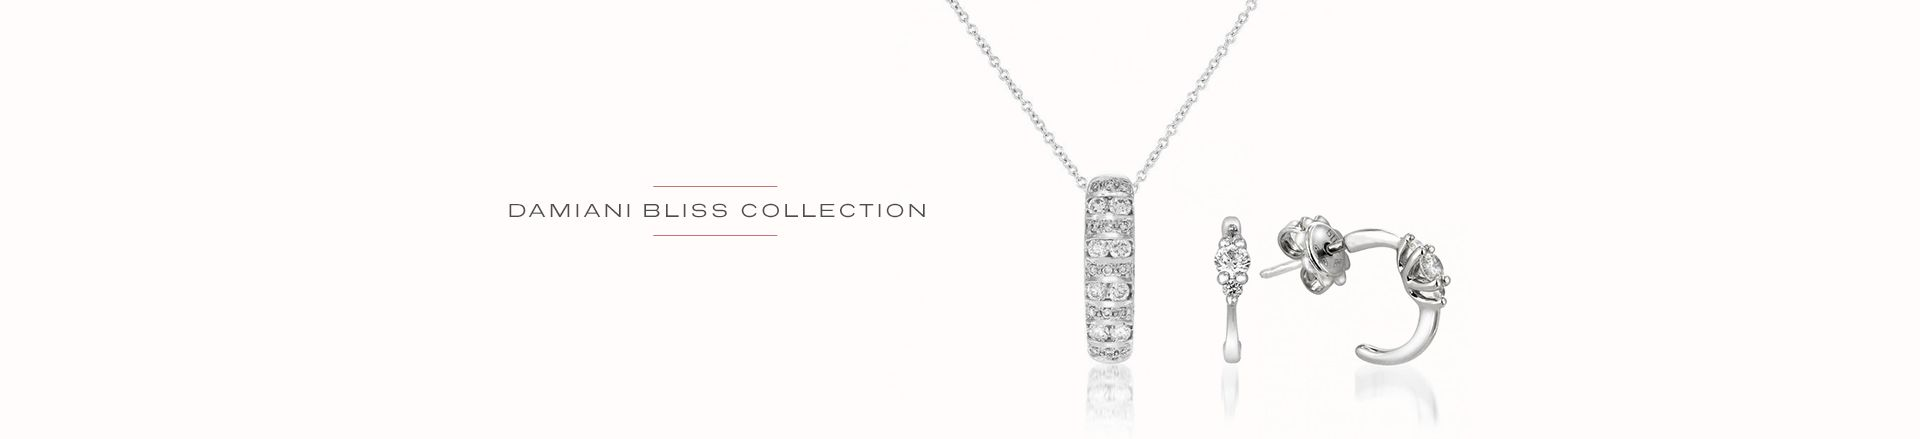 Damiani Bliss Collection